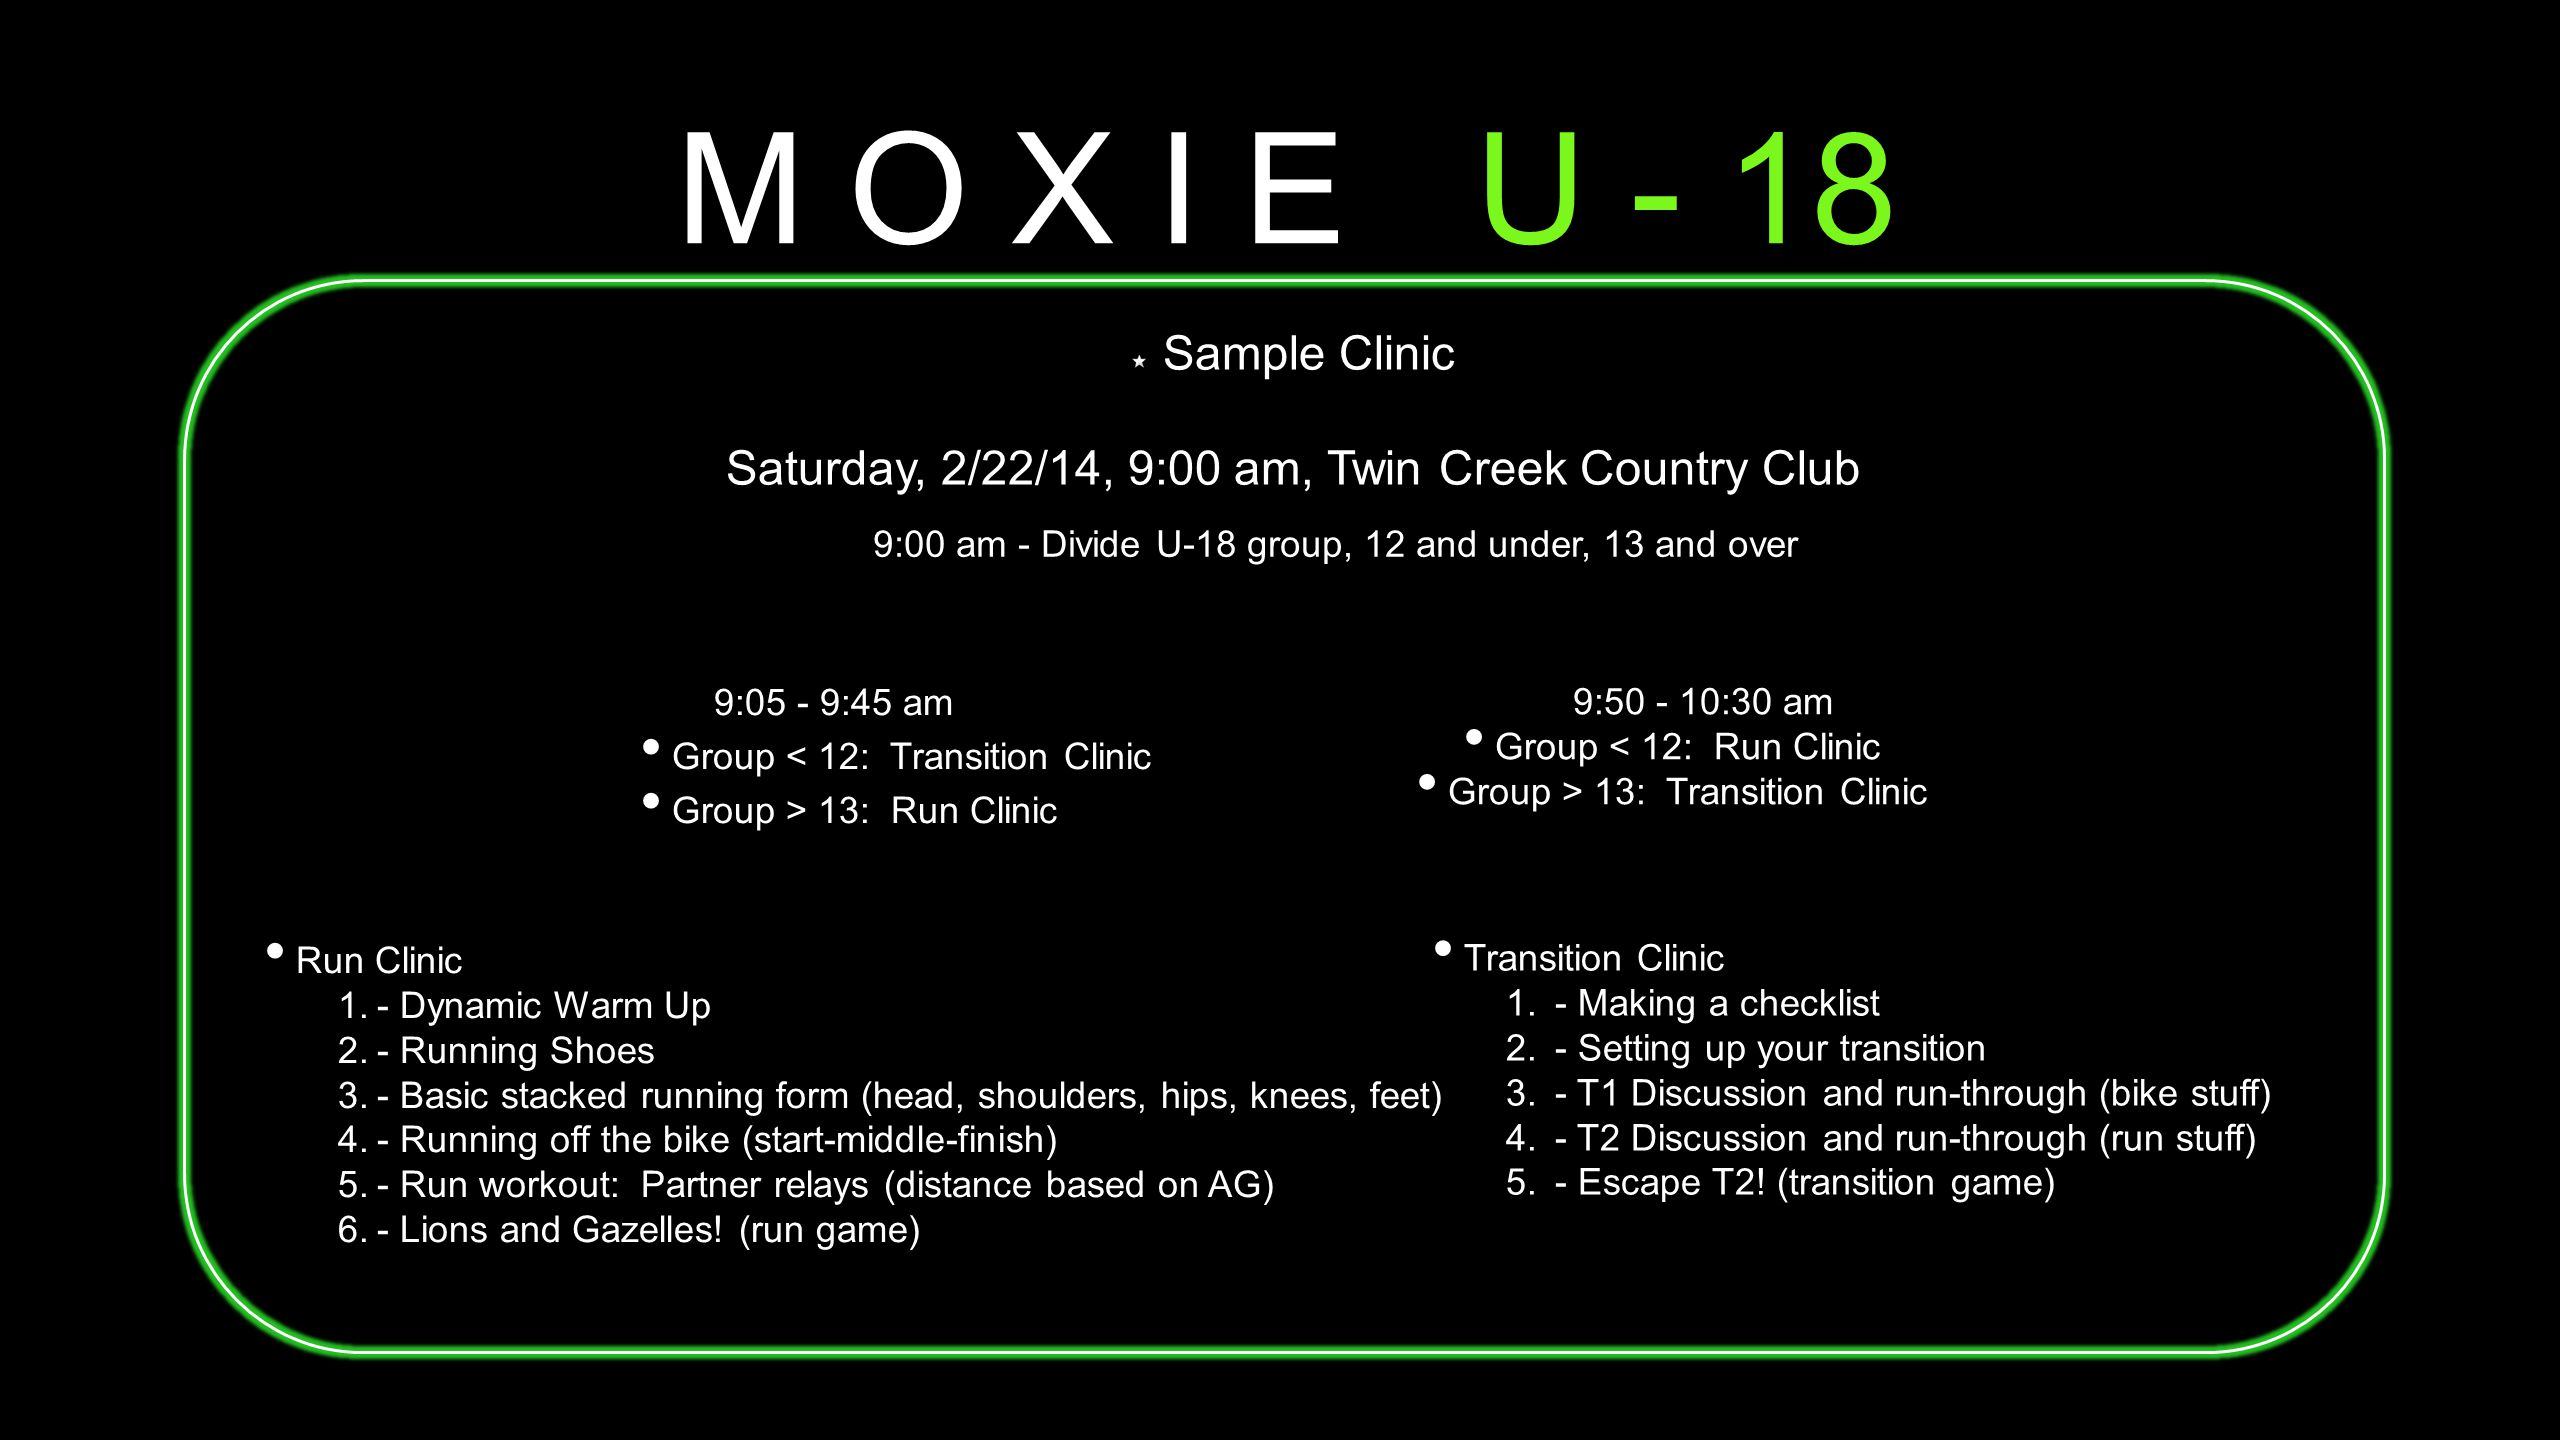 M O X I E U - 18 Sample Clinic Saturday, 2/22/14, 9:00 am, Twin Creek Country Club Run Clinic 1.- Dynamic Warm Up 2.- Running Shoes 3.- Basic stacked running form (head, shoulders, hips, knees, feet) 4.- Running off the bike (start-middle-finish) 5.- Run workout: Partner relays (distance based on AG) 6.- Lions and Gazelles.